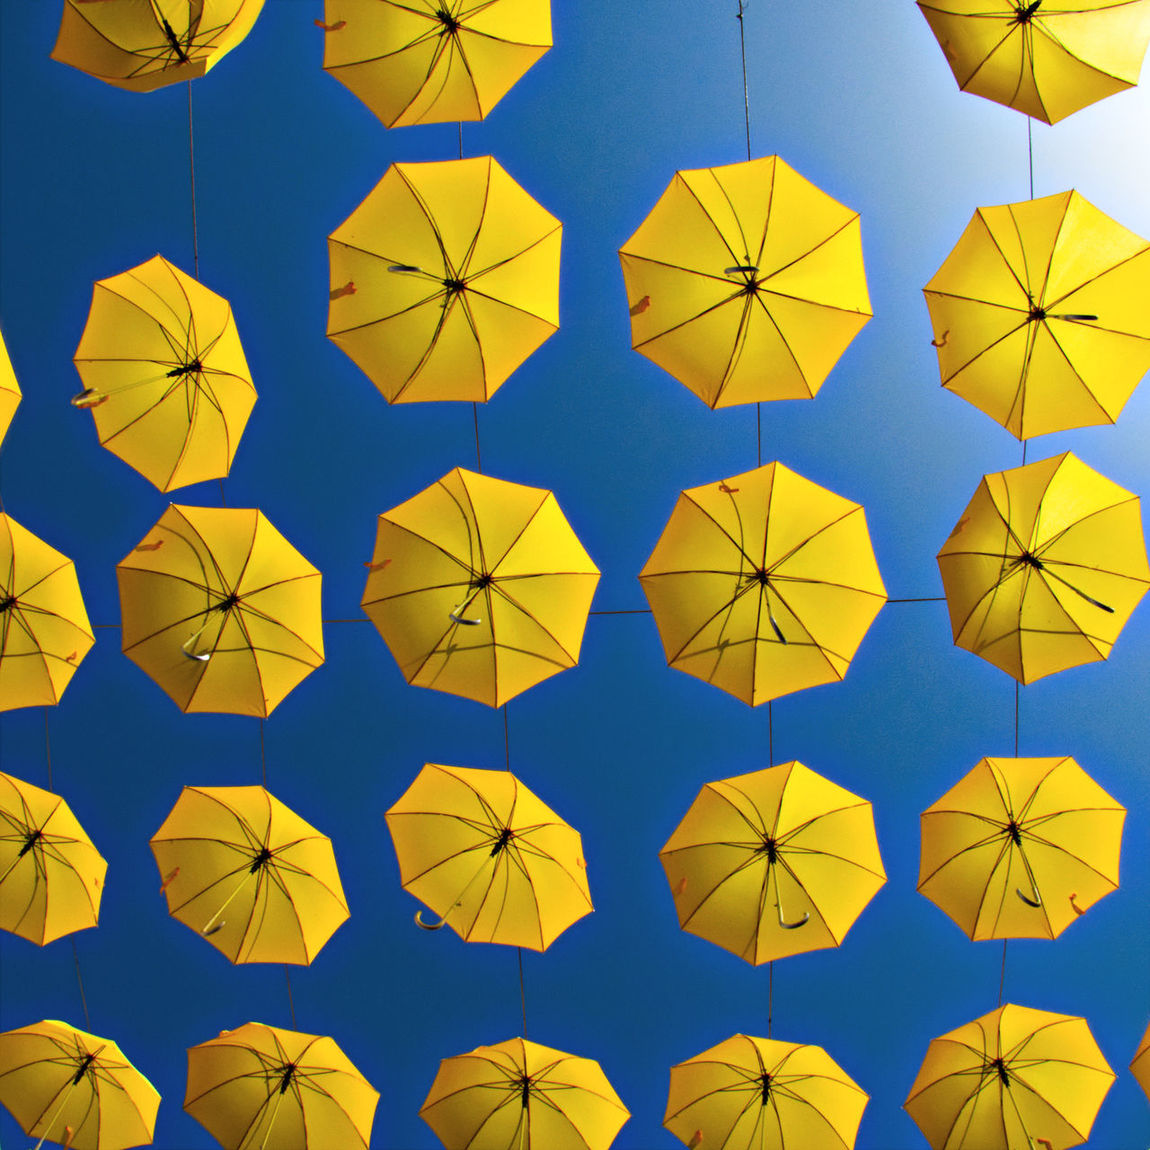 Art Art Exhibition Blue Sky Bottom Up Color Contrast Colorful Contrasting Colors Creativity Daylight Decoration Dramatic Angles Hanging Hanging Umbrellas Large Group Of Objects Light Low Angle View Outdoors Sky Vibrant Colors Yellow Yellow And Blue Beautifully Organized